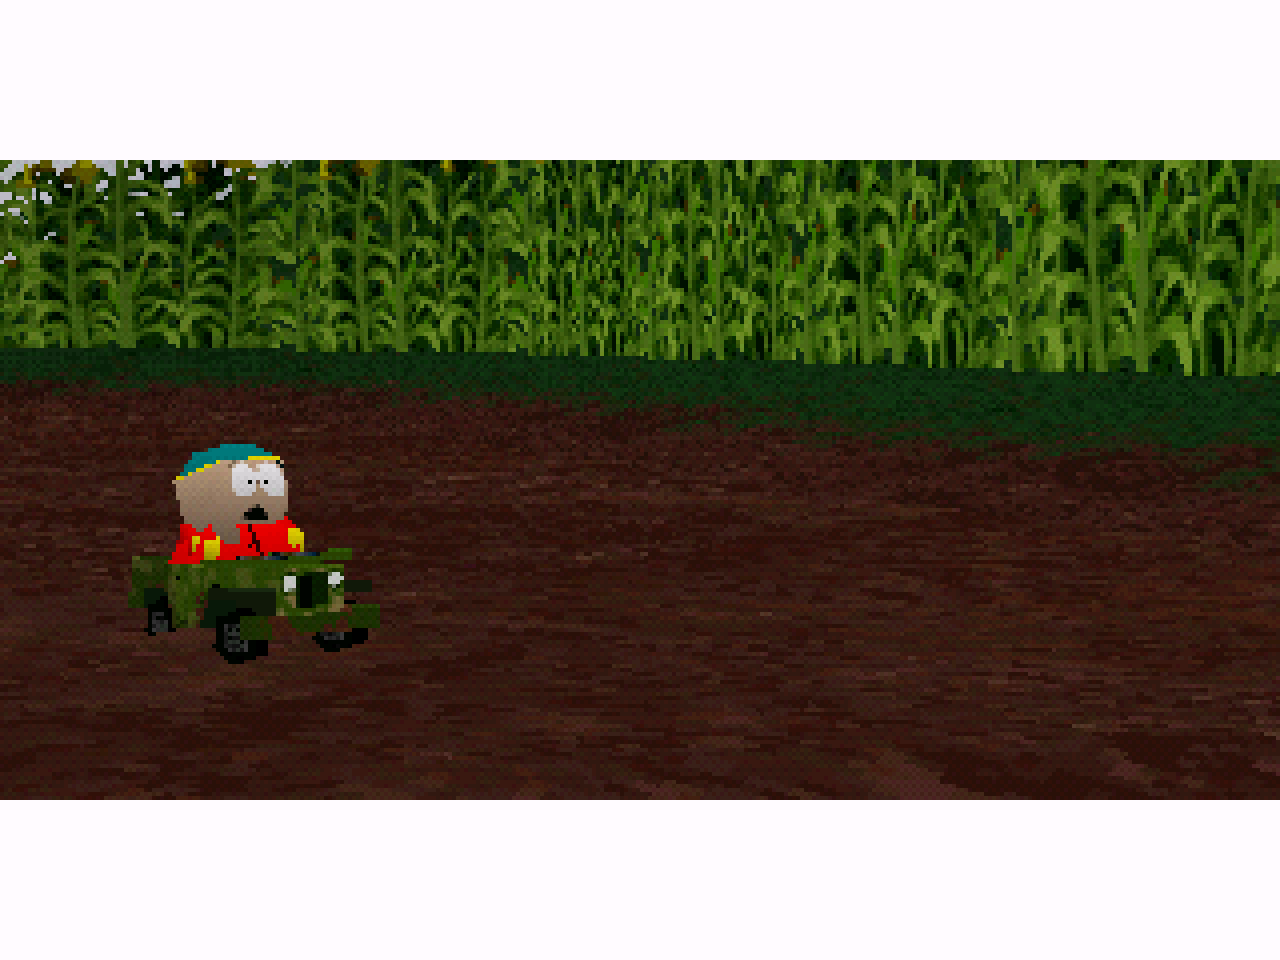 https://s3.eu-west-3.amazonaws.com/games.anthony-dessalles.com/South Park Rally PS1 2020 - Screenshots/South Park Rally-201125-180626.png